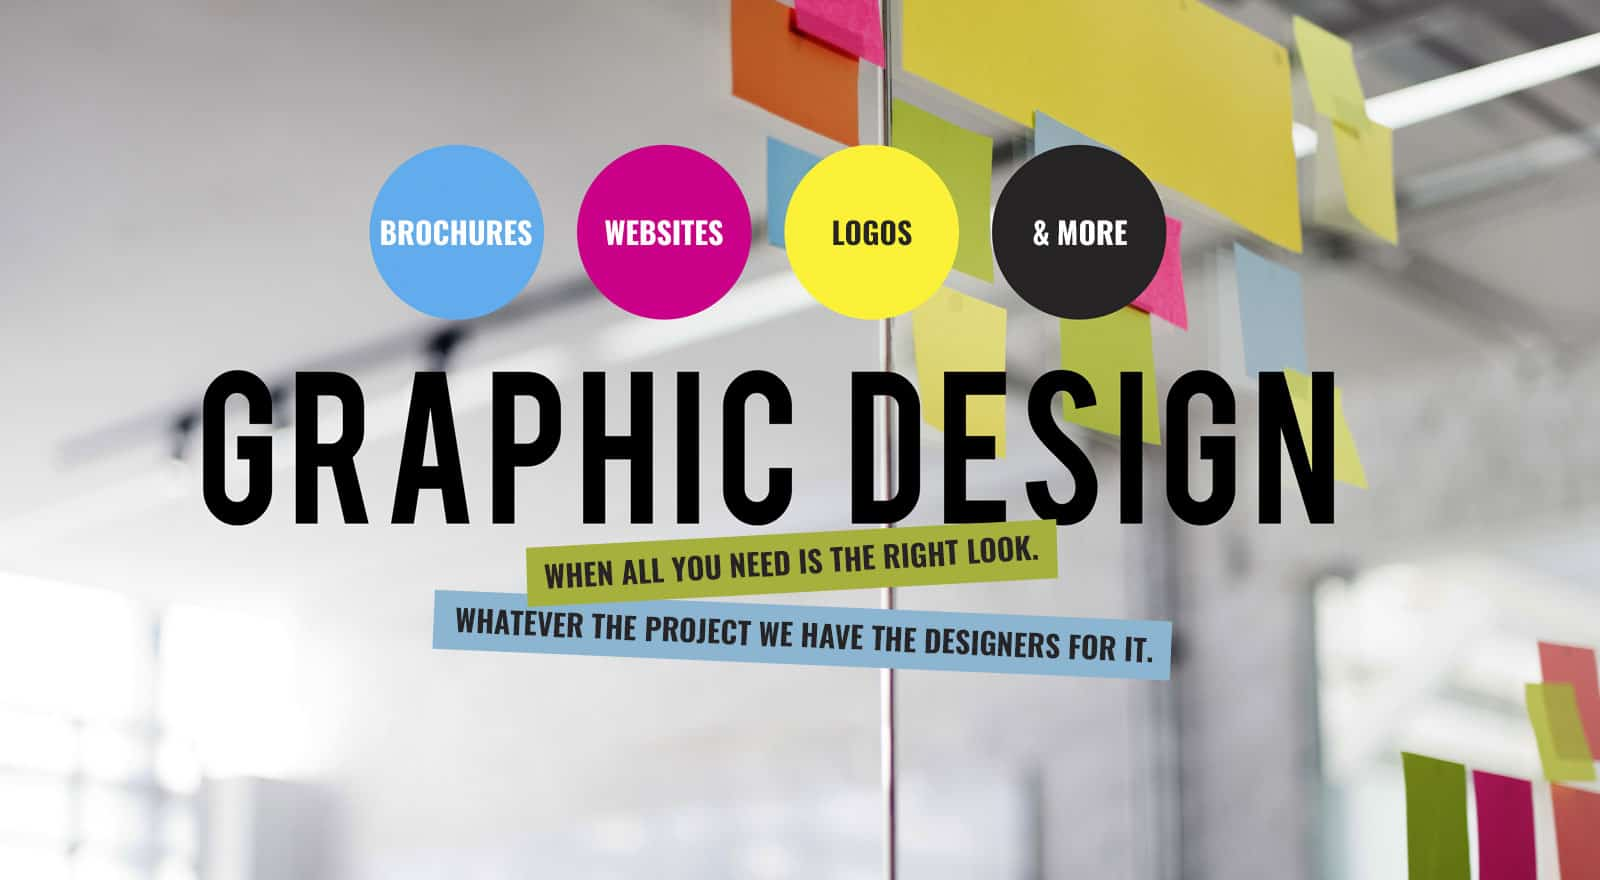 Graphic Design: When all you need is the right look. Whatever the project we have the designer for it